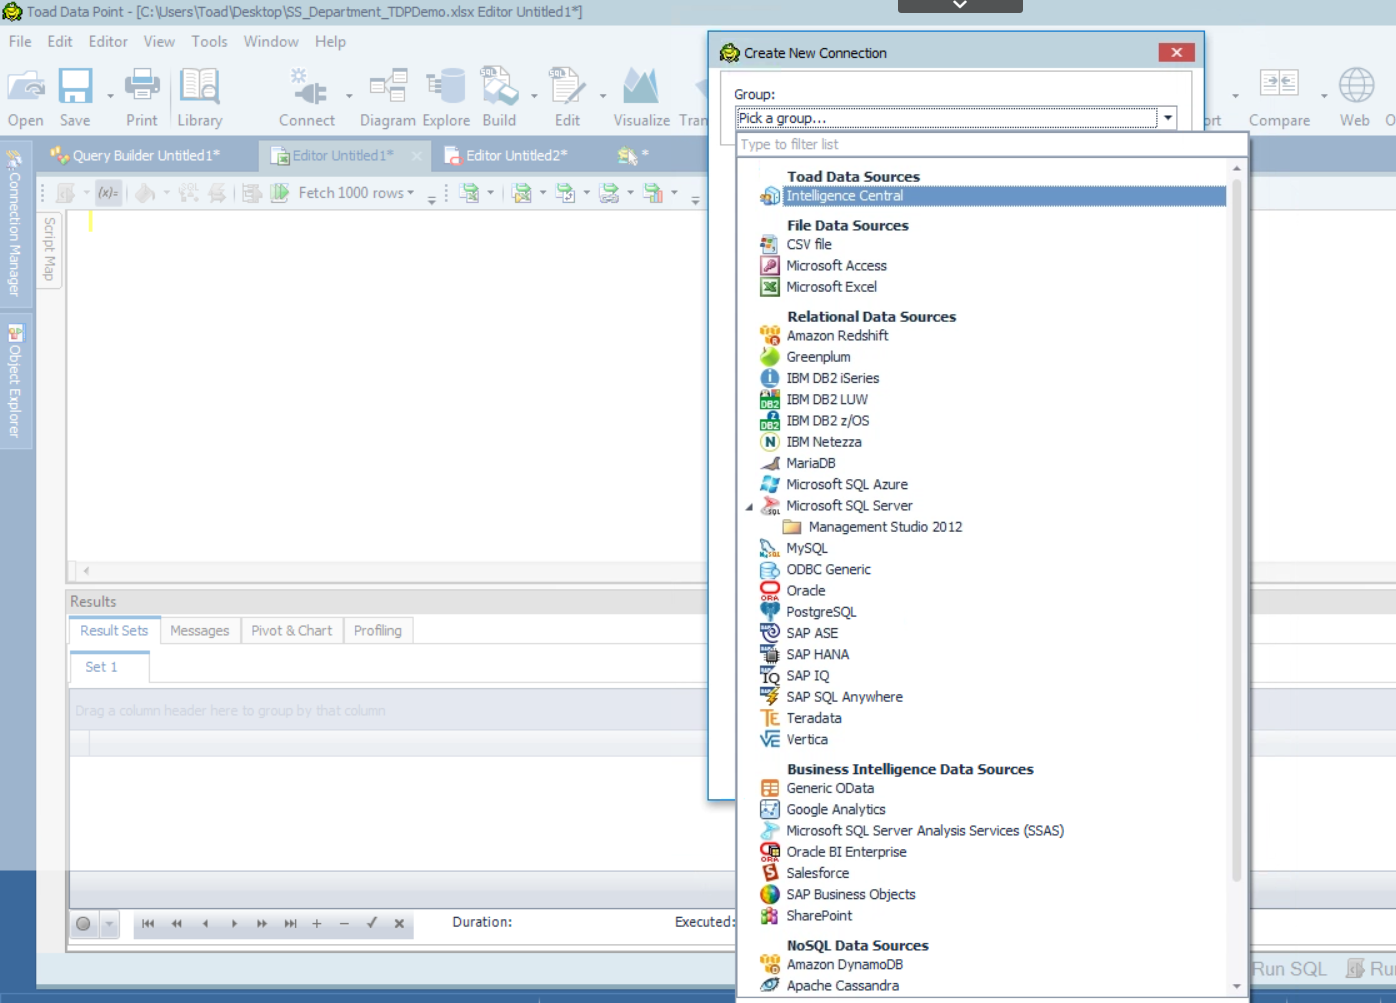 Screen shot of Toad Data Modeler Intelligence Central feature, which allows you to connect to over 30 different databases.